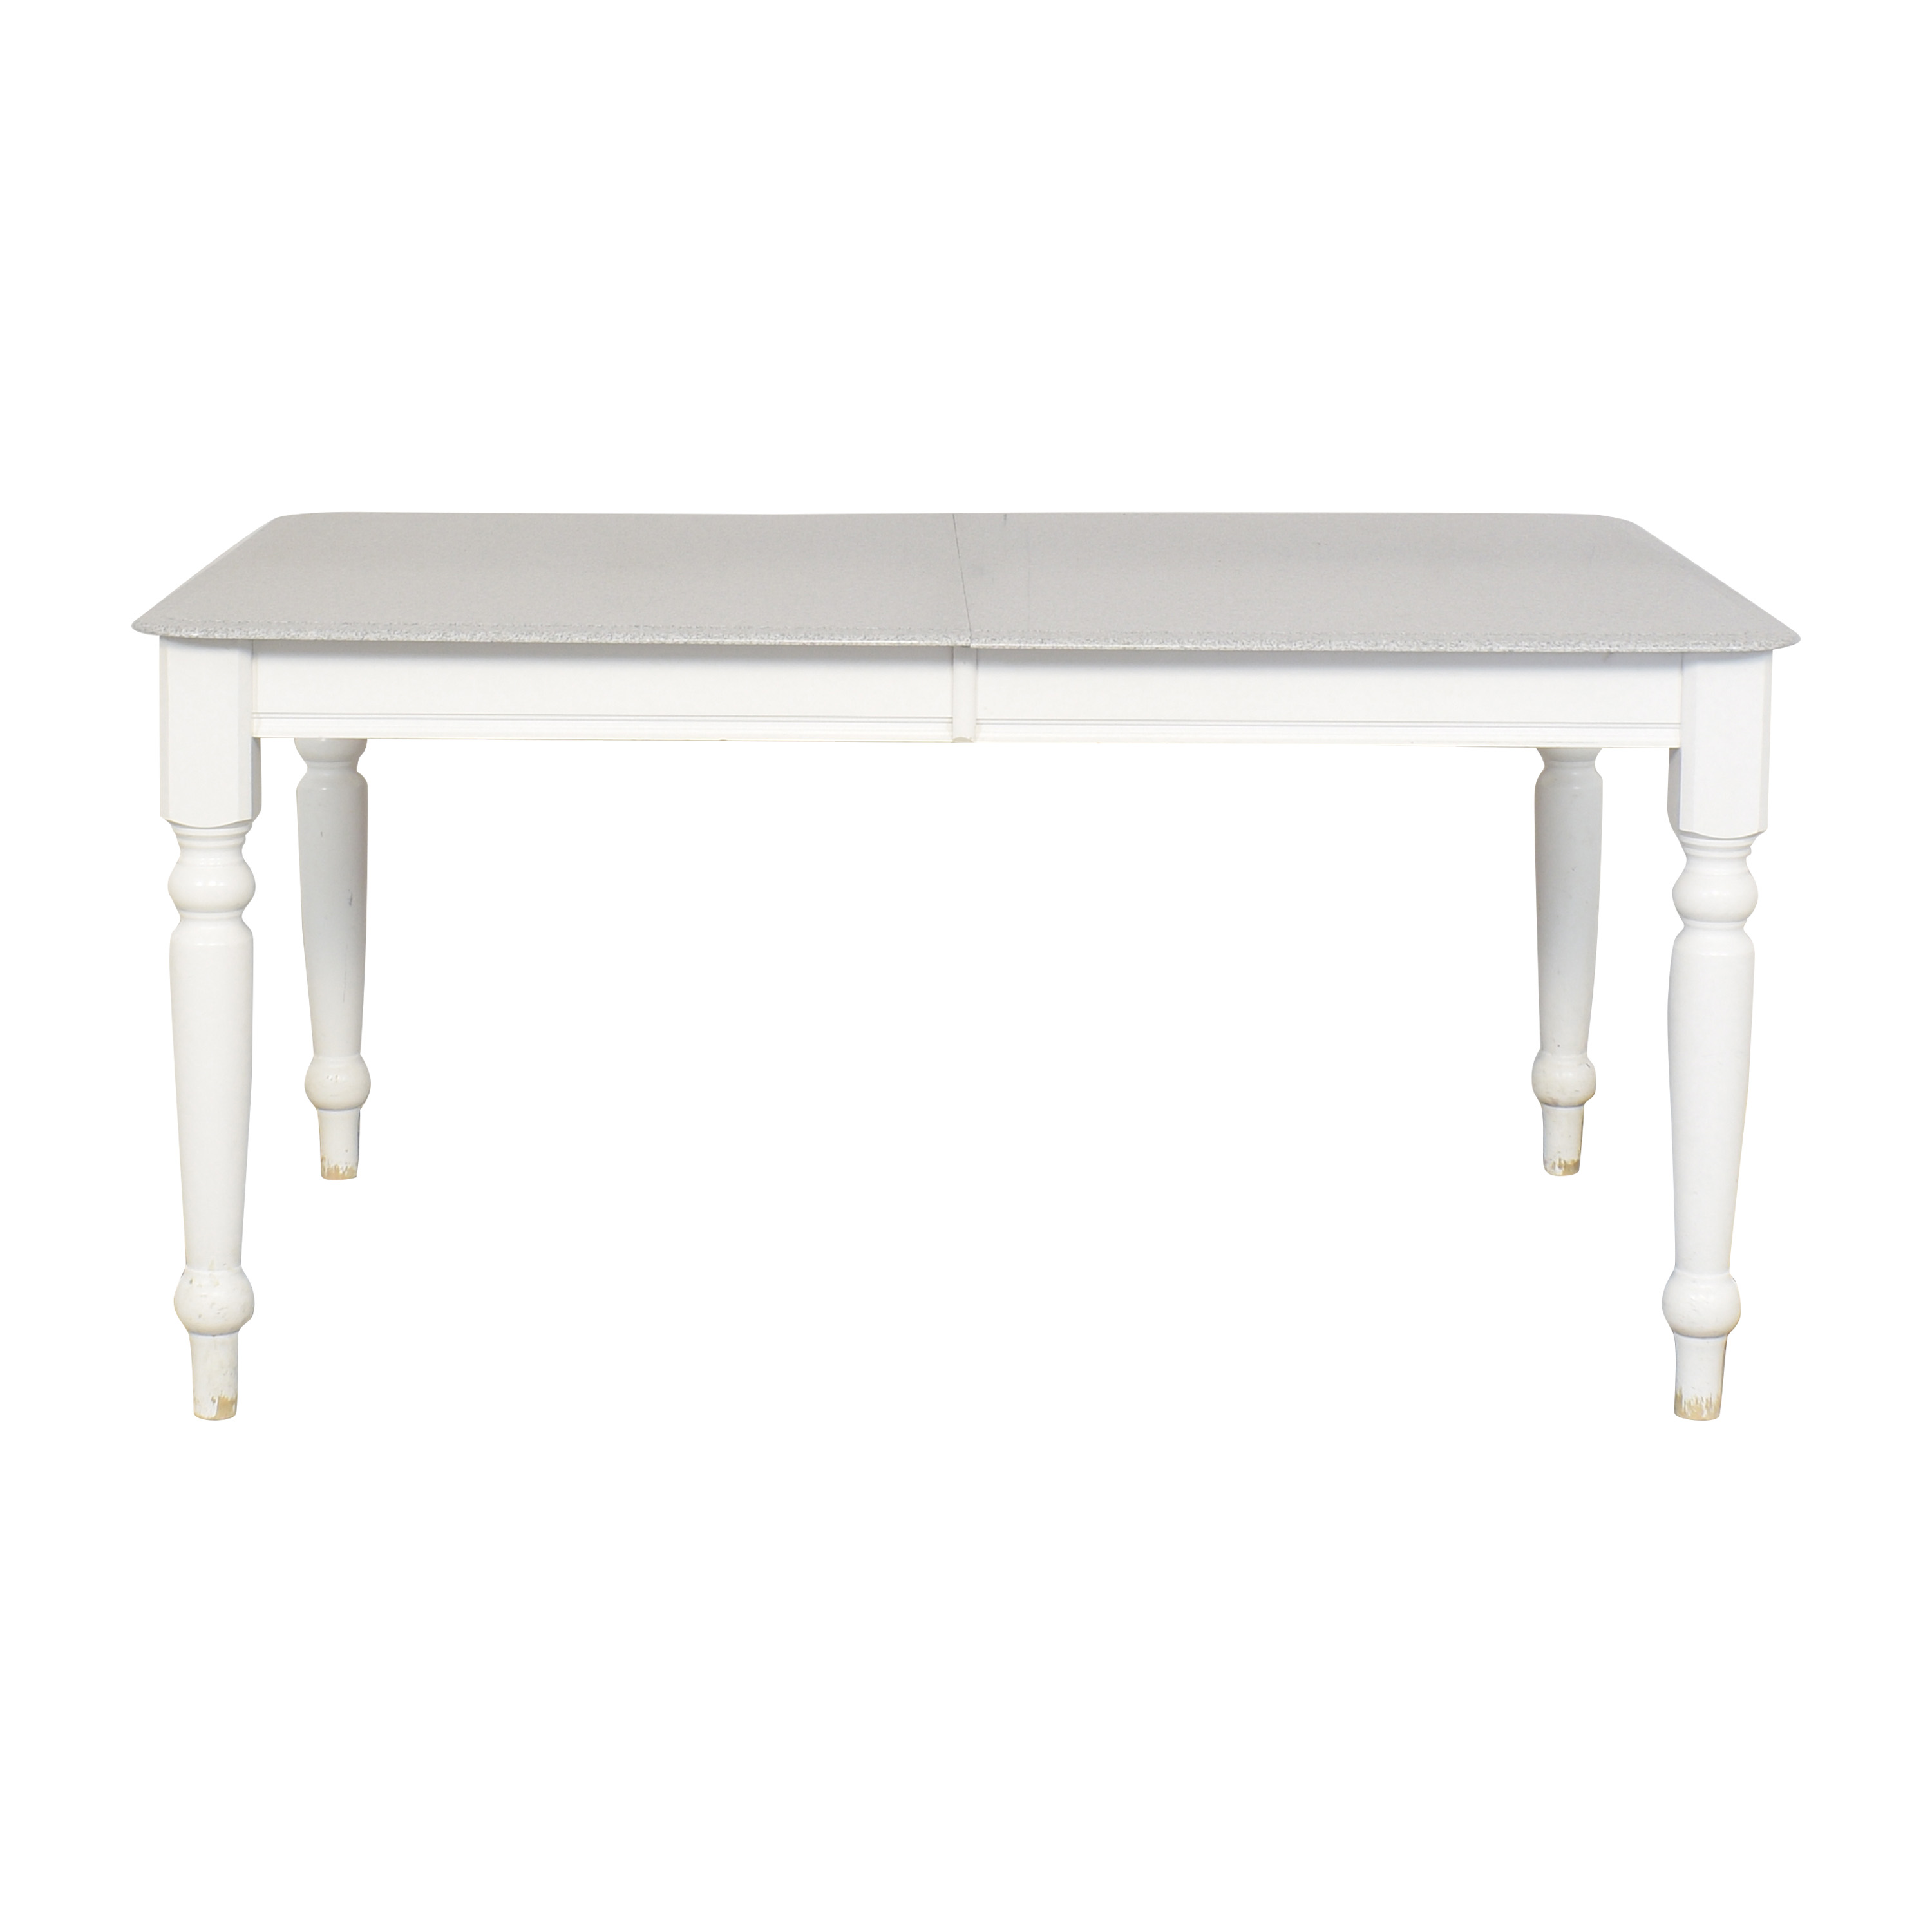 Canadel Canadel Extendable Dining Table discount